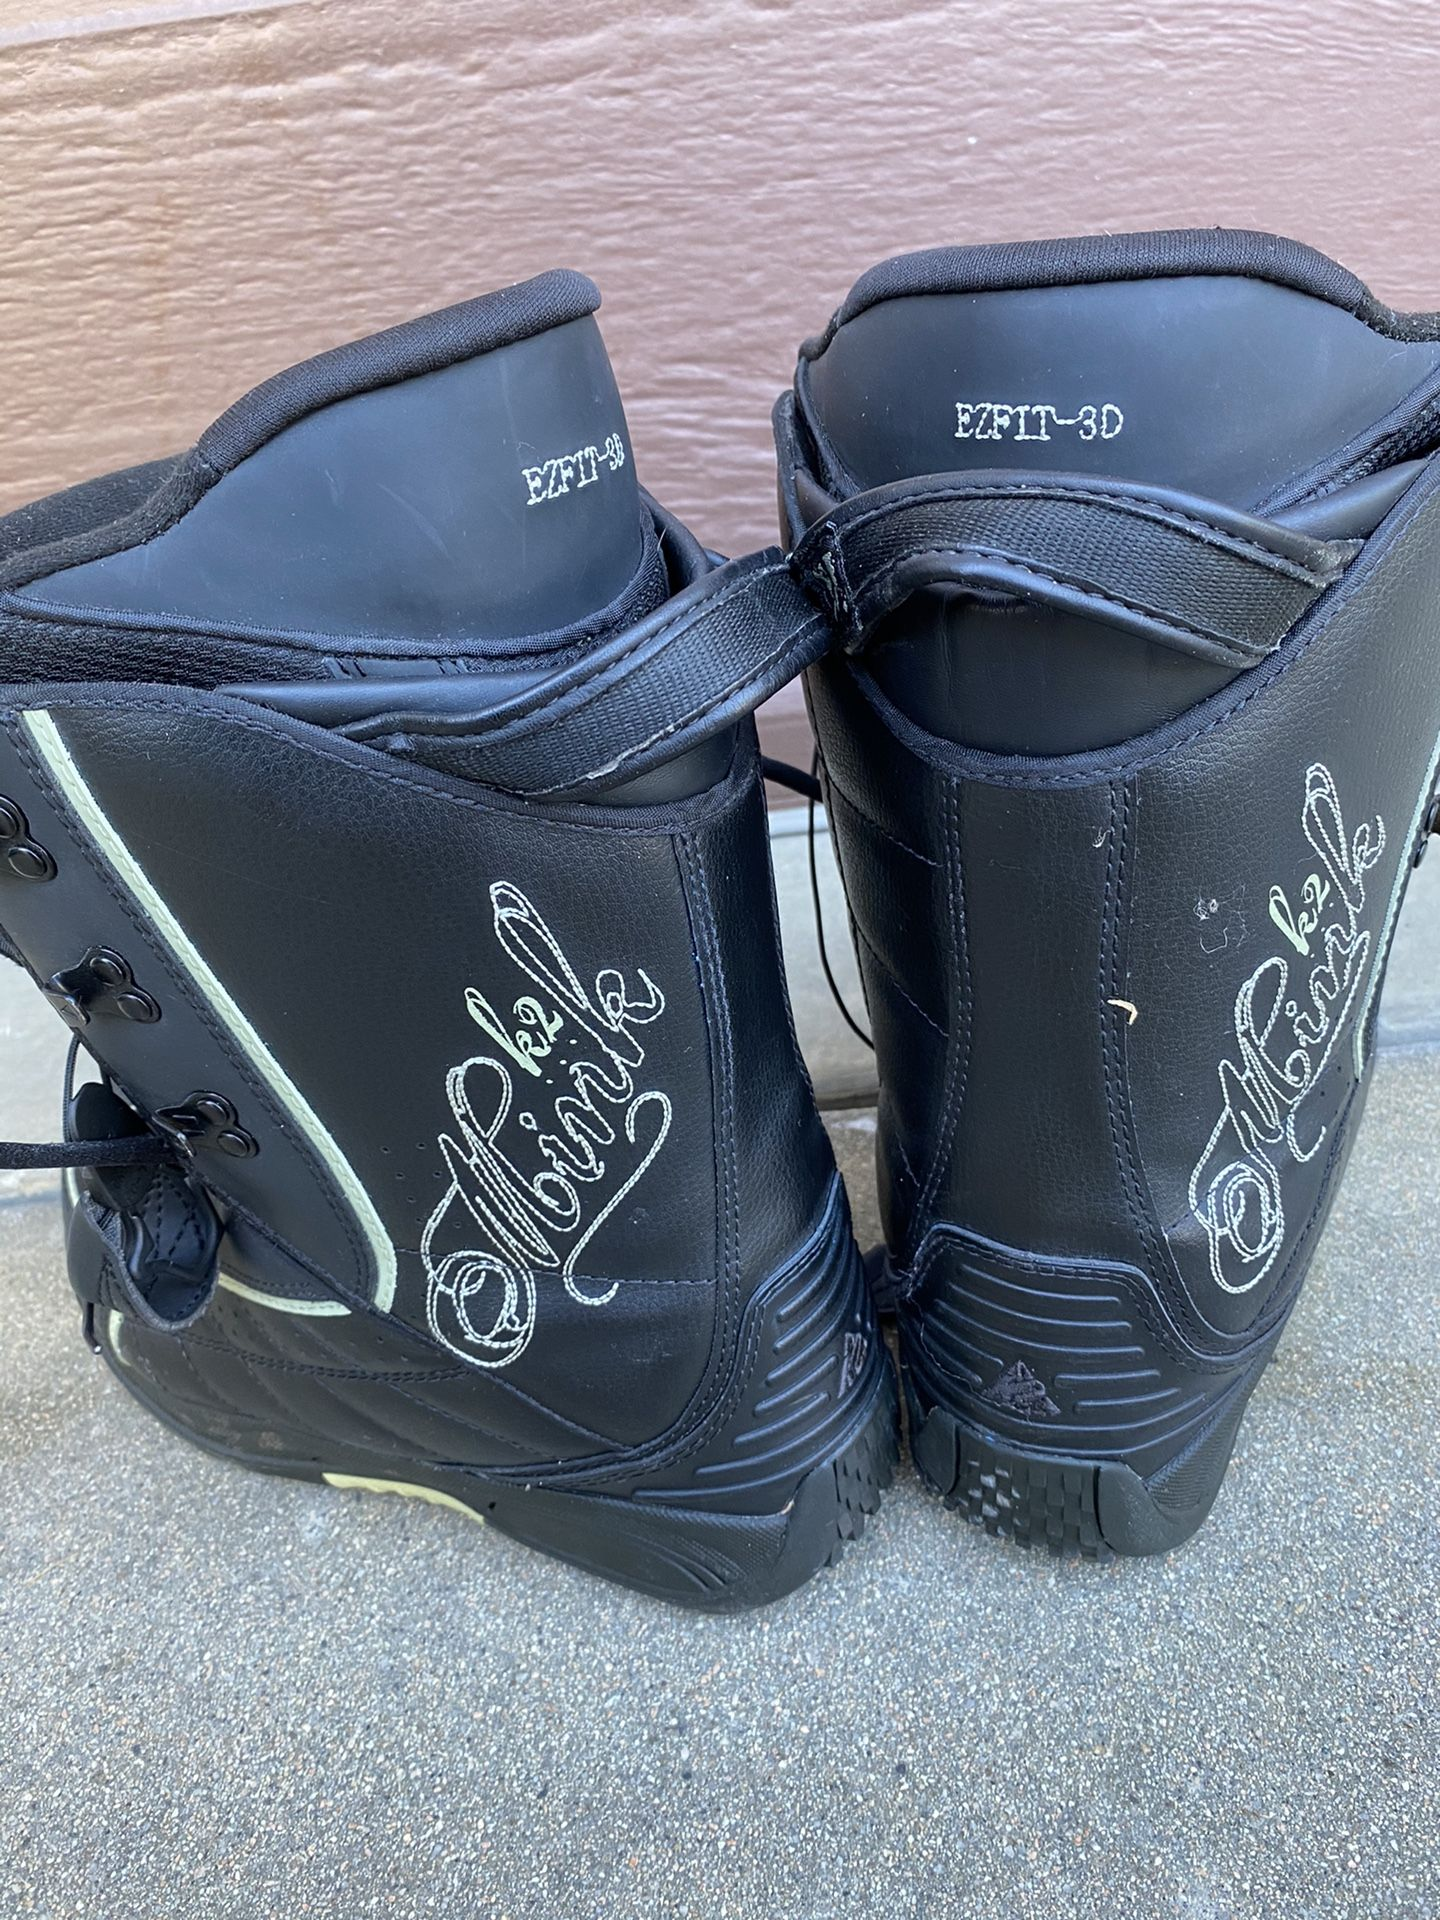 Burton Snowboard And Travel Bag And Boots